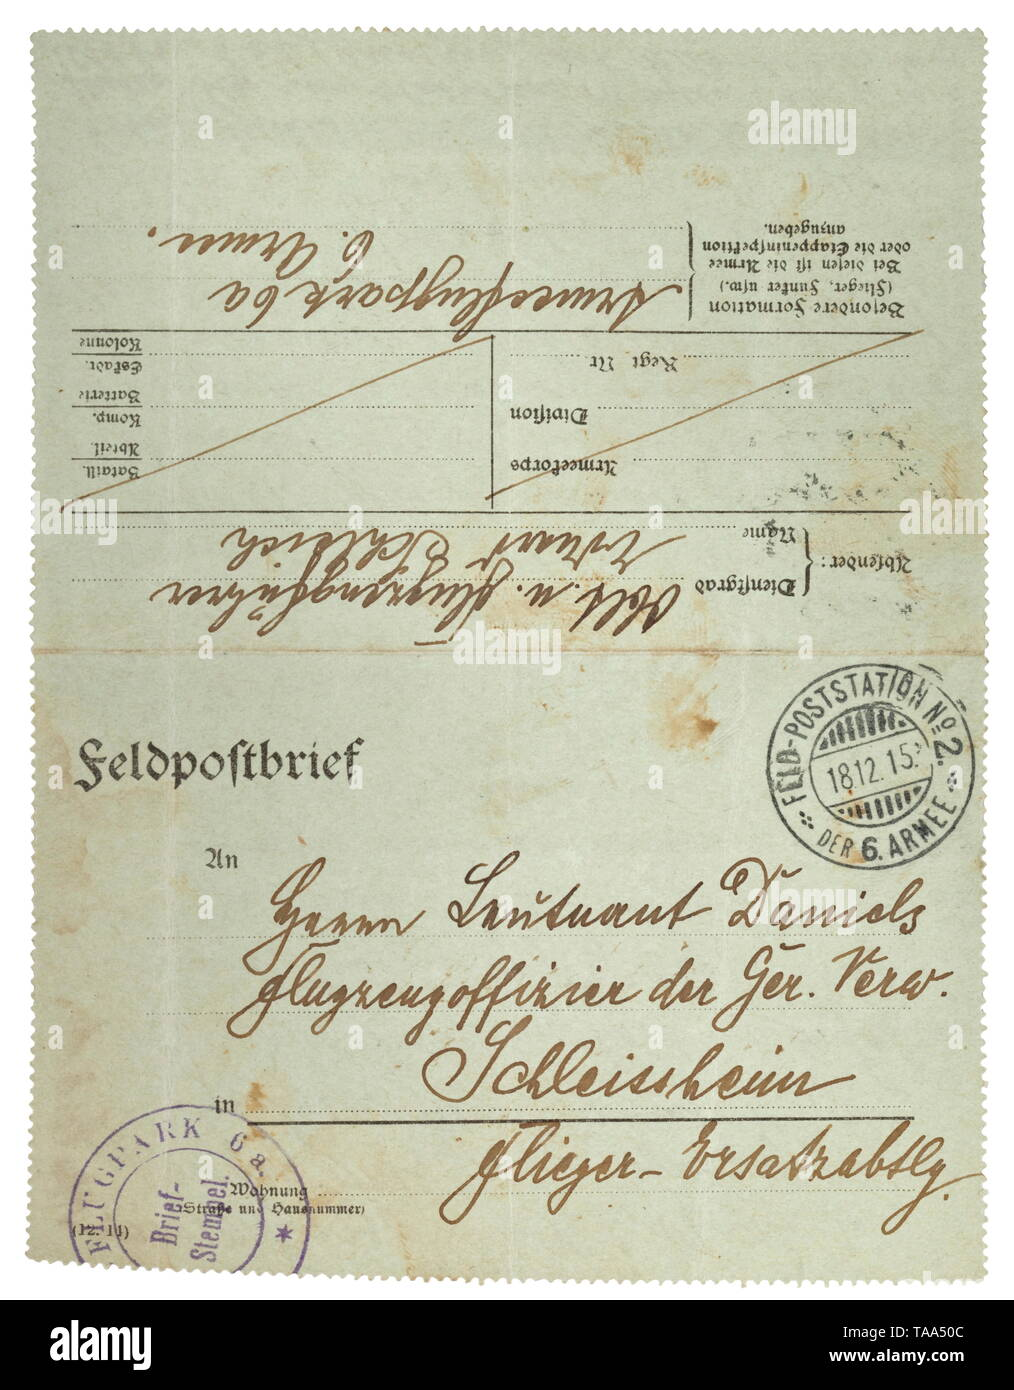 Eduard Ritter von Schleich (1888 - 1947) - a field post letter dated 1915 A letter written by the pilot Oberleutnant E. Schleich to the aircraft officer Daniels in the Aviator Replacement Detachment Schleißheim, dated 18 December 1915. Two pages written and signed in his own hand. Schleich complains that the winter equipment (he lists fur coats, boots, leather gear, fur hood) has not been issued and makes a requisition. Dimensions 12 x 16.5 cm, sent as field post. An officer and politician, Eduard Ritter von Schleich was a successful fighter pilot during World War I with 35, Editorial-Use-Only - Stock Image